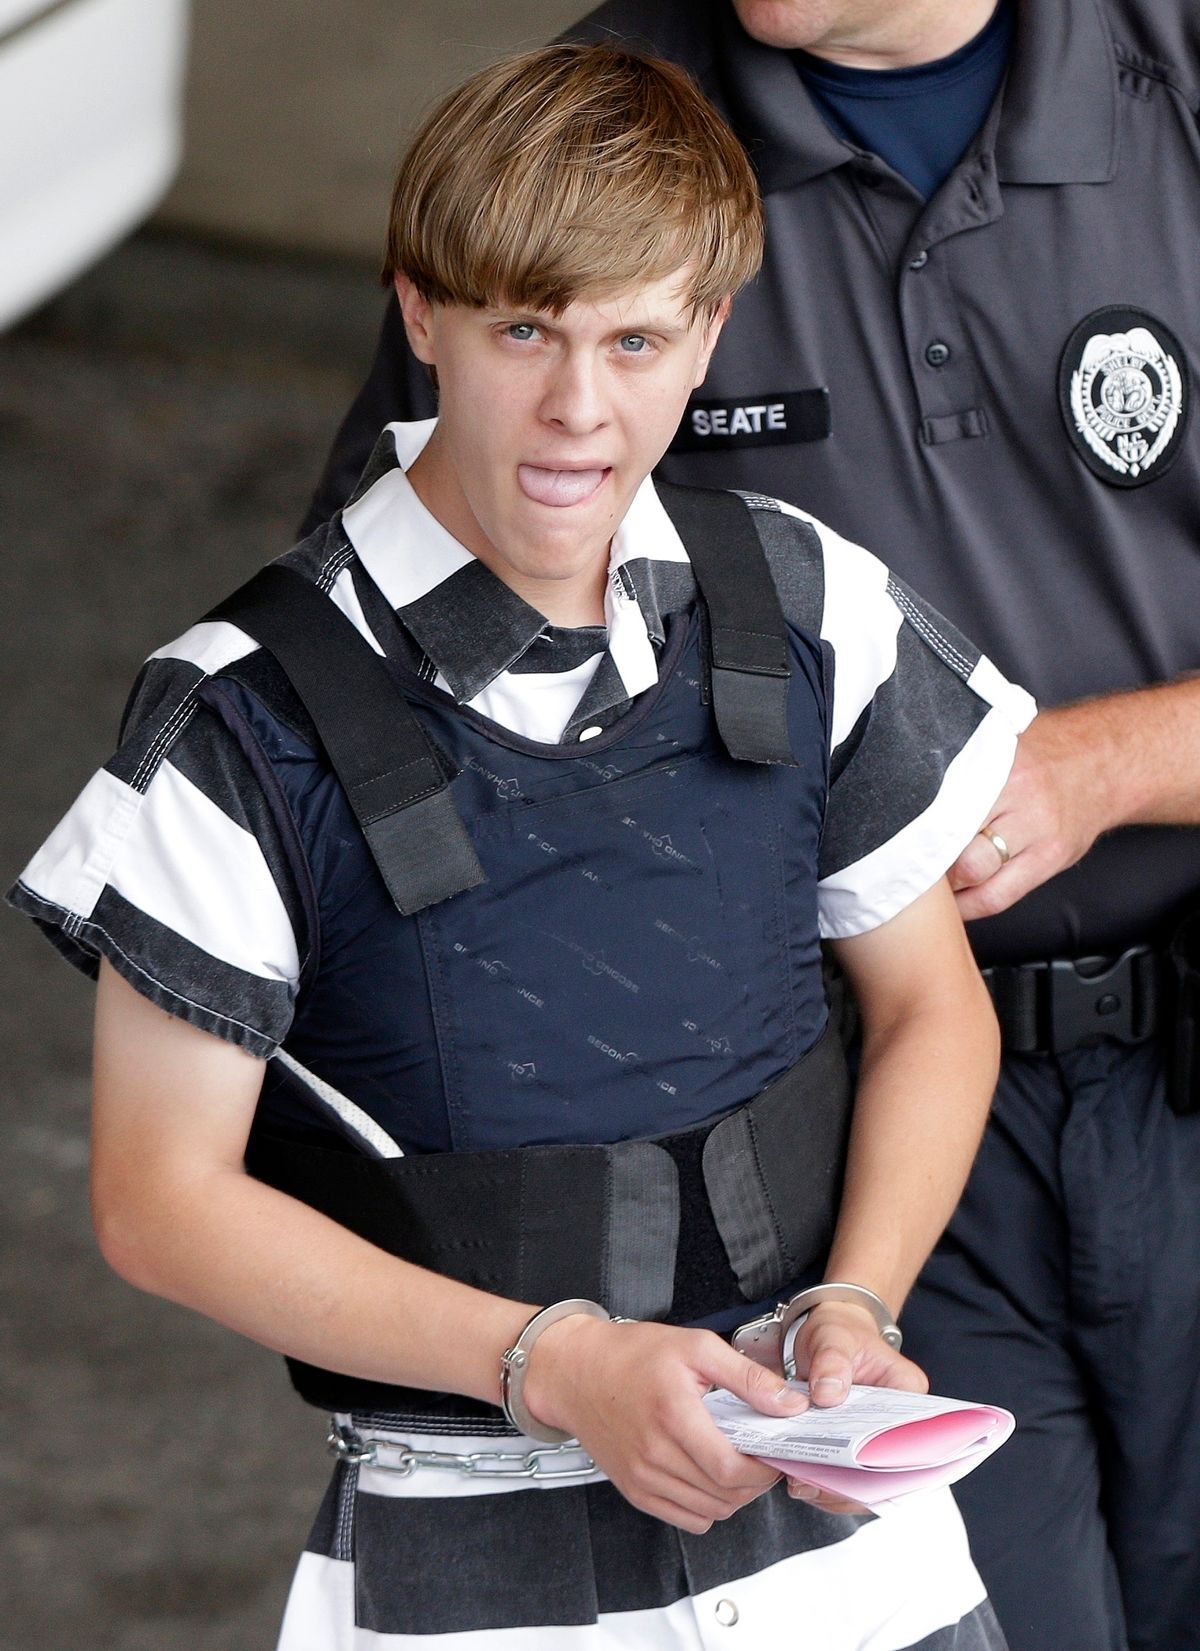 FILE - In this Thursday, June 18, 2015, file photo, Charleston, S.C., shooting suspect Dylann Roof is escorted from the Cleveland County Courthouse in Shelby, N.C. T (AP)